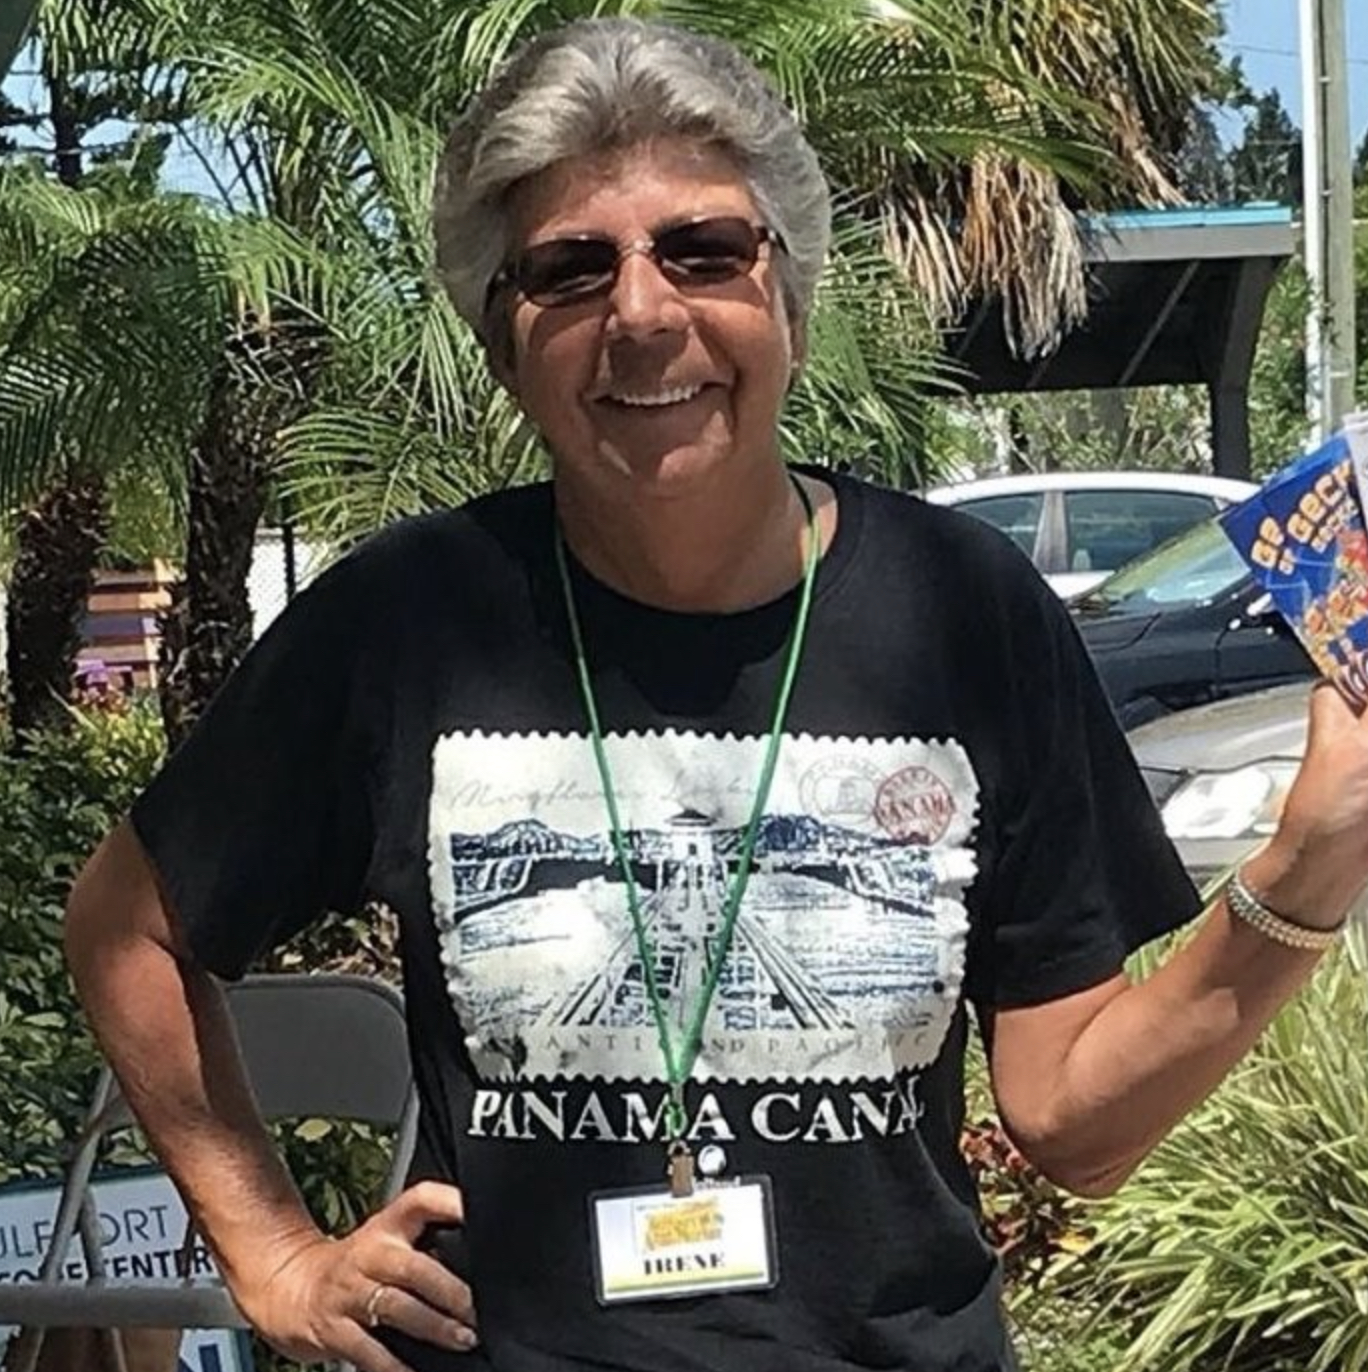 """A woman in a t-shirt that says """"Panama Canal"""" in sunglasses"""